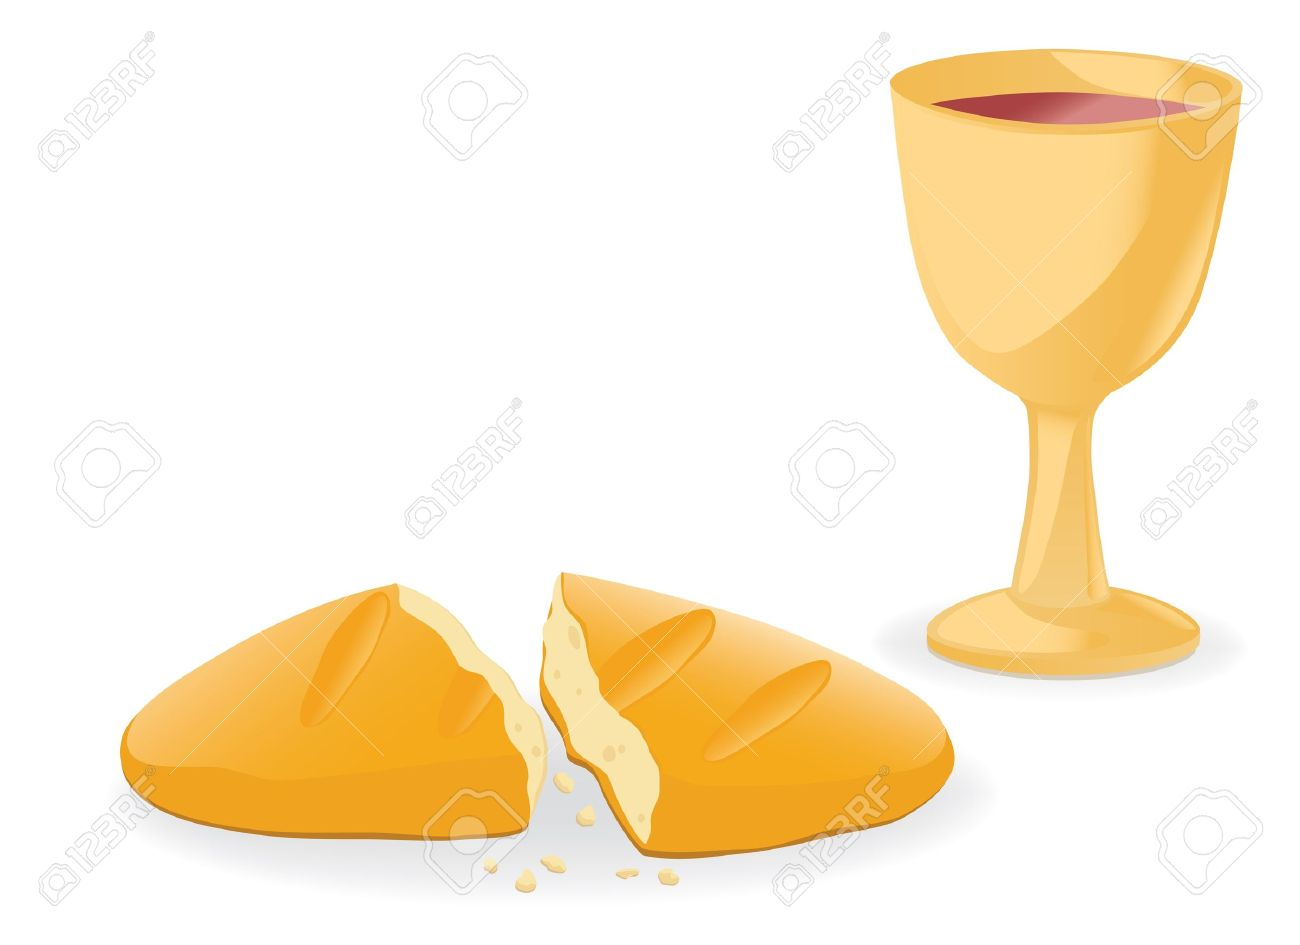 Communion bread and wine clipart.